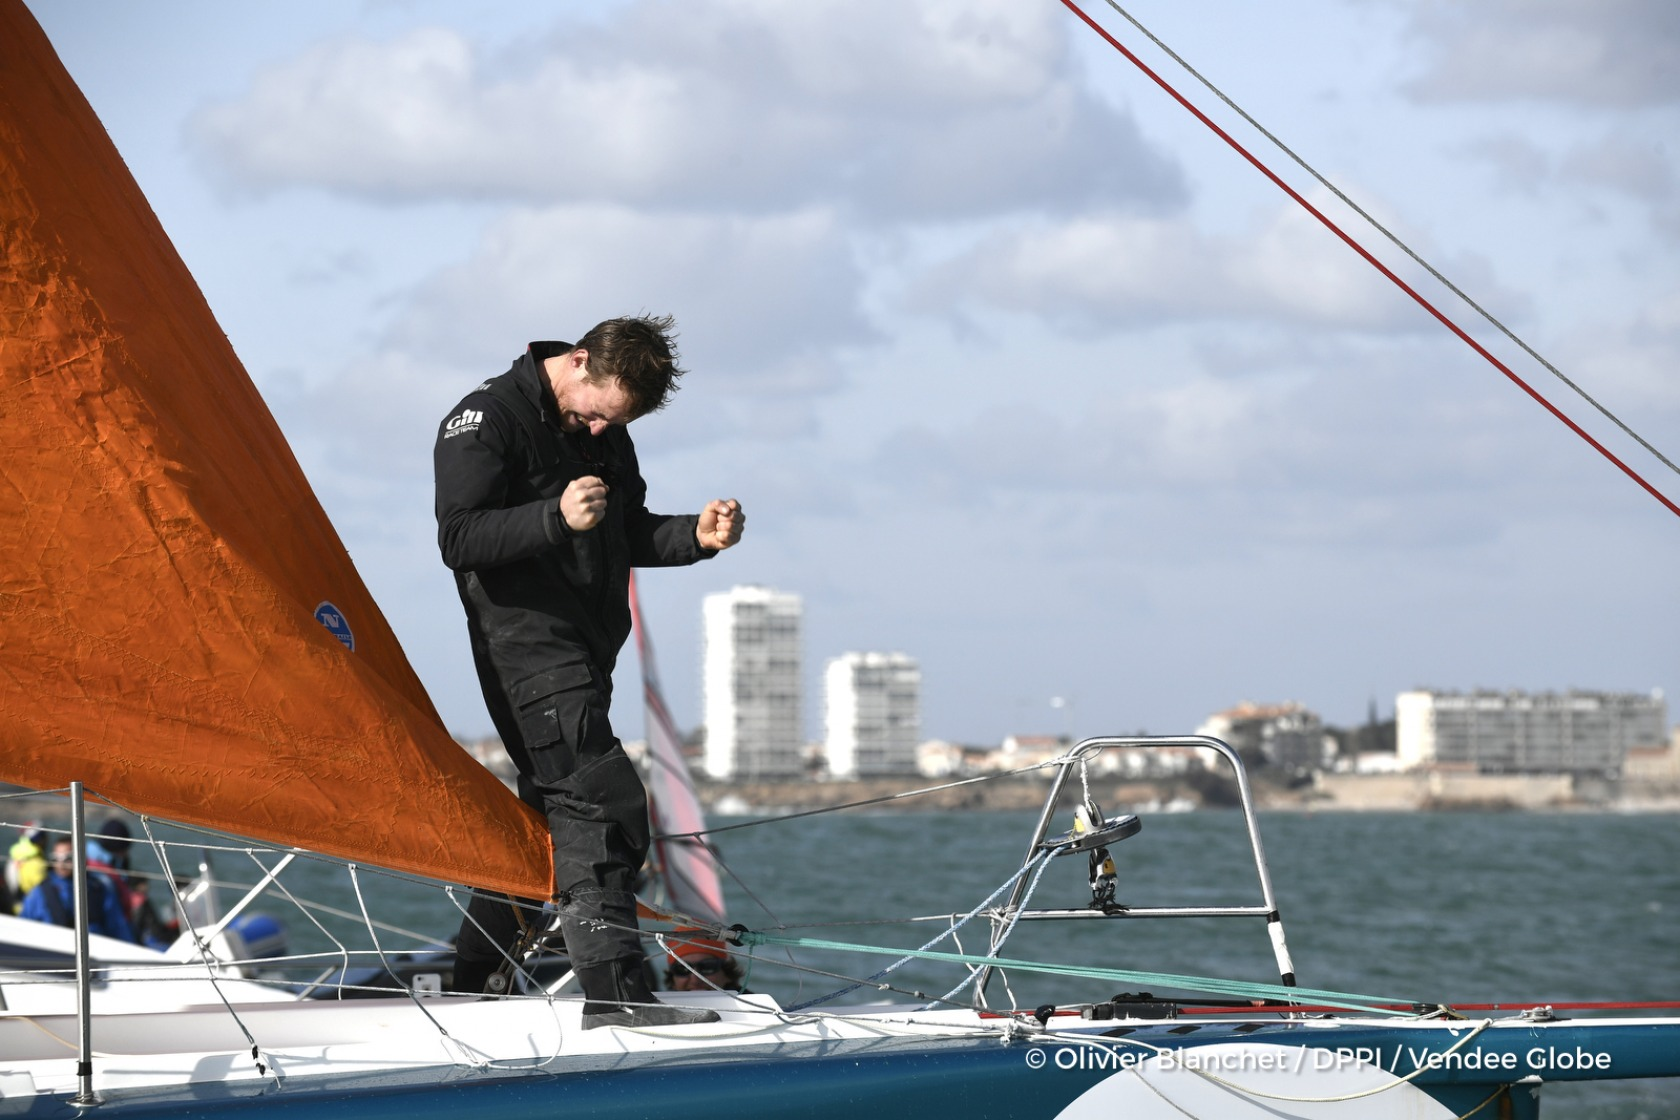 Finish arrival of Conrad Colman (NZL), skipper Foresight Natural Energy,16th of the sailing circumnavigation solo race Vendee Globe, in Les Sables d'Olonne, France, on February 24th, 2017 - Photo Olivier Blanchet / DPPI / Vendee GlobeArrivée de Conrad Colman (NZL), skipper Foresight Natural Energy, 16ème du Vendee Globe, aux Sables d'Olonne, France, le 24 Février 2017 - Photo Olivier Blanchet /